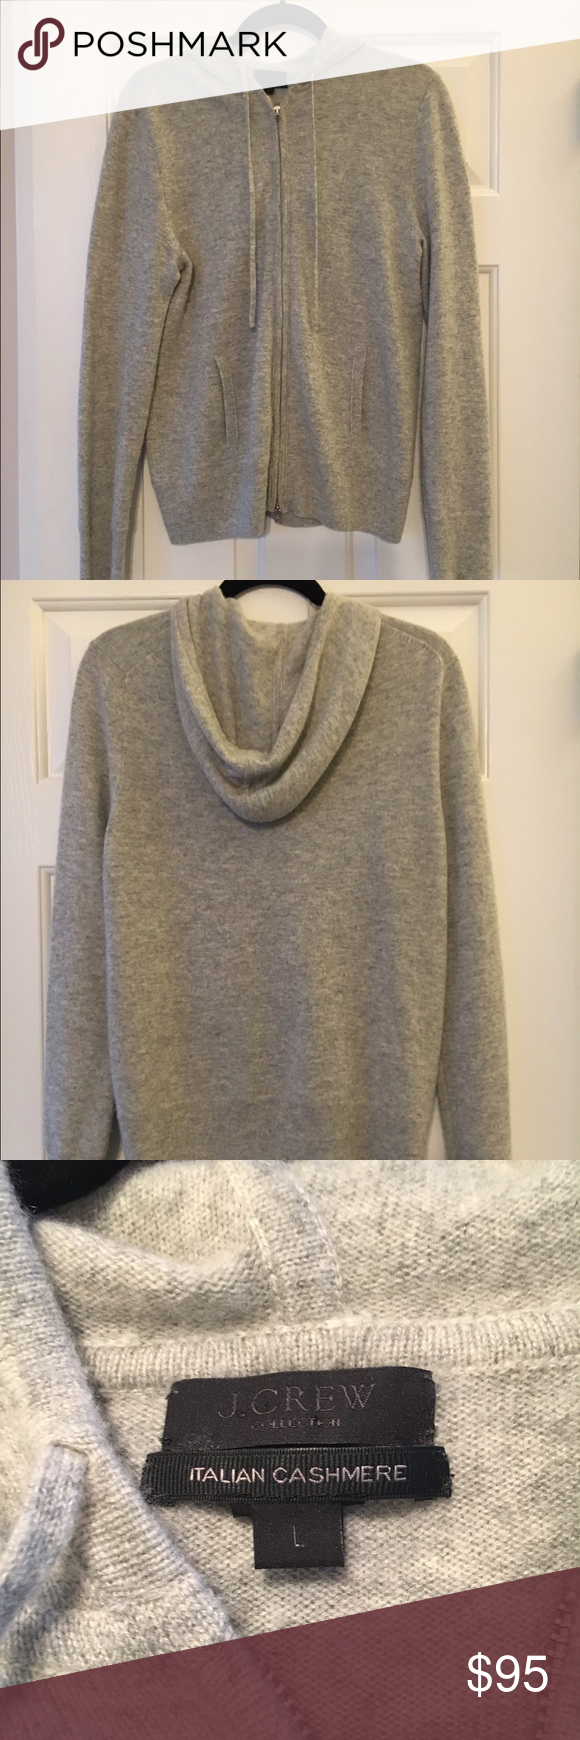 Jcrew Hoodie Cashmere sweater | Cashmere sweaters, Jcrew and Cashmere